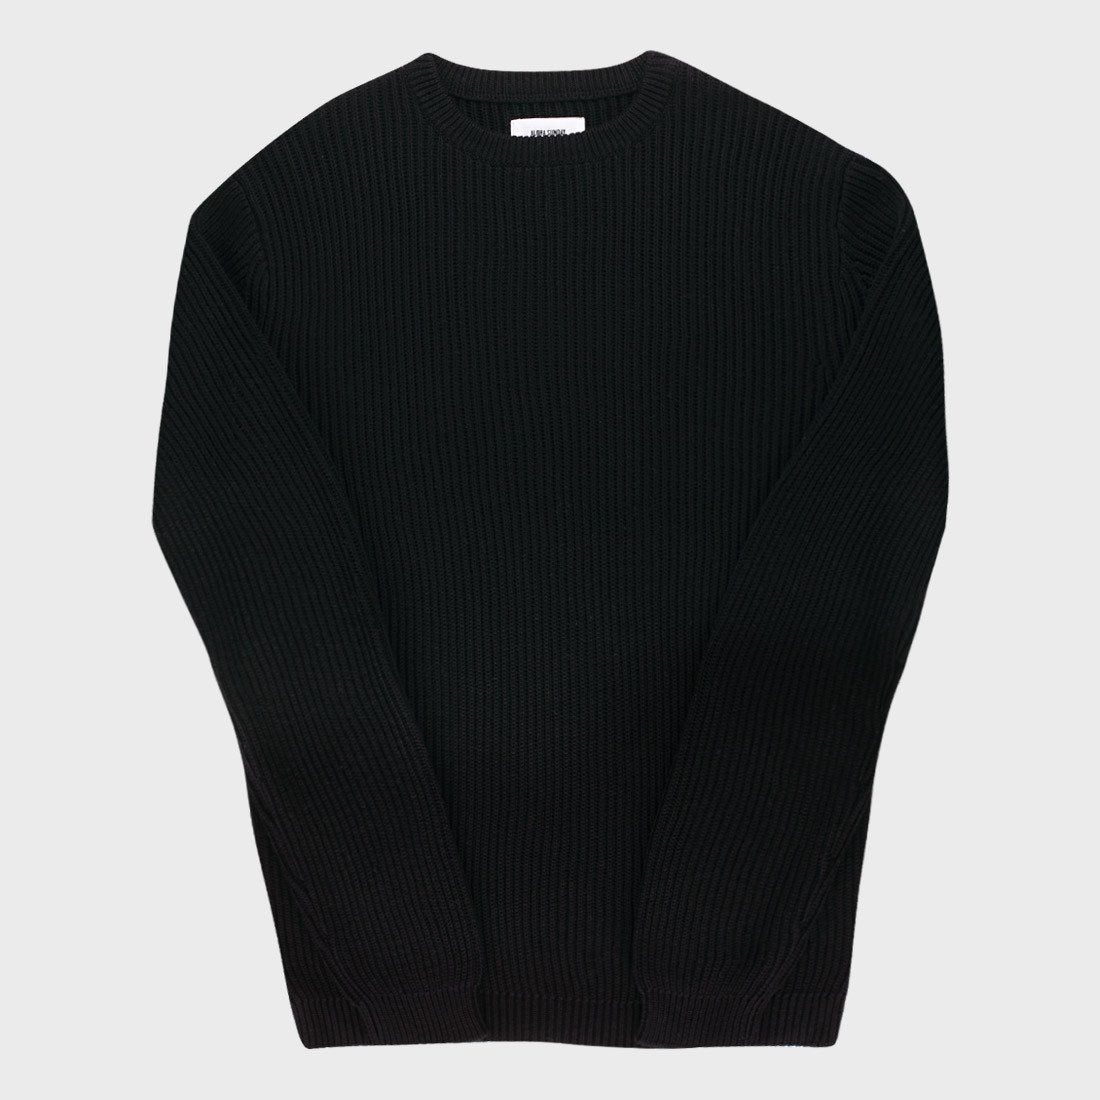 Aloha Sunday Noa Sweater Black